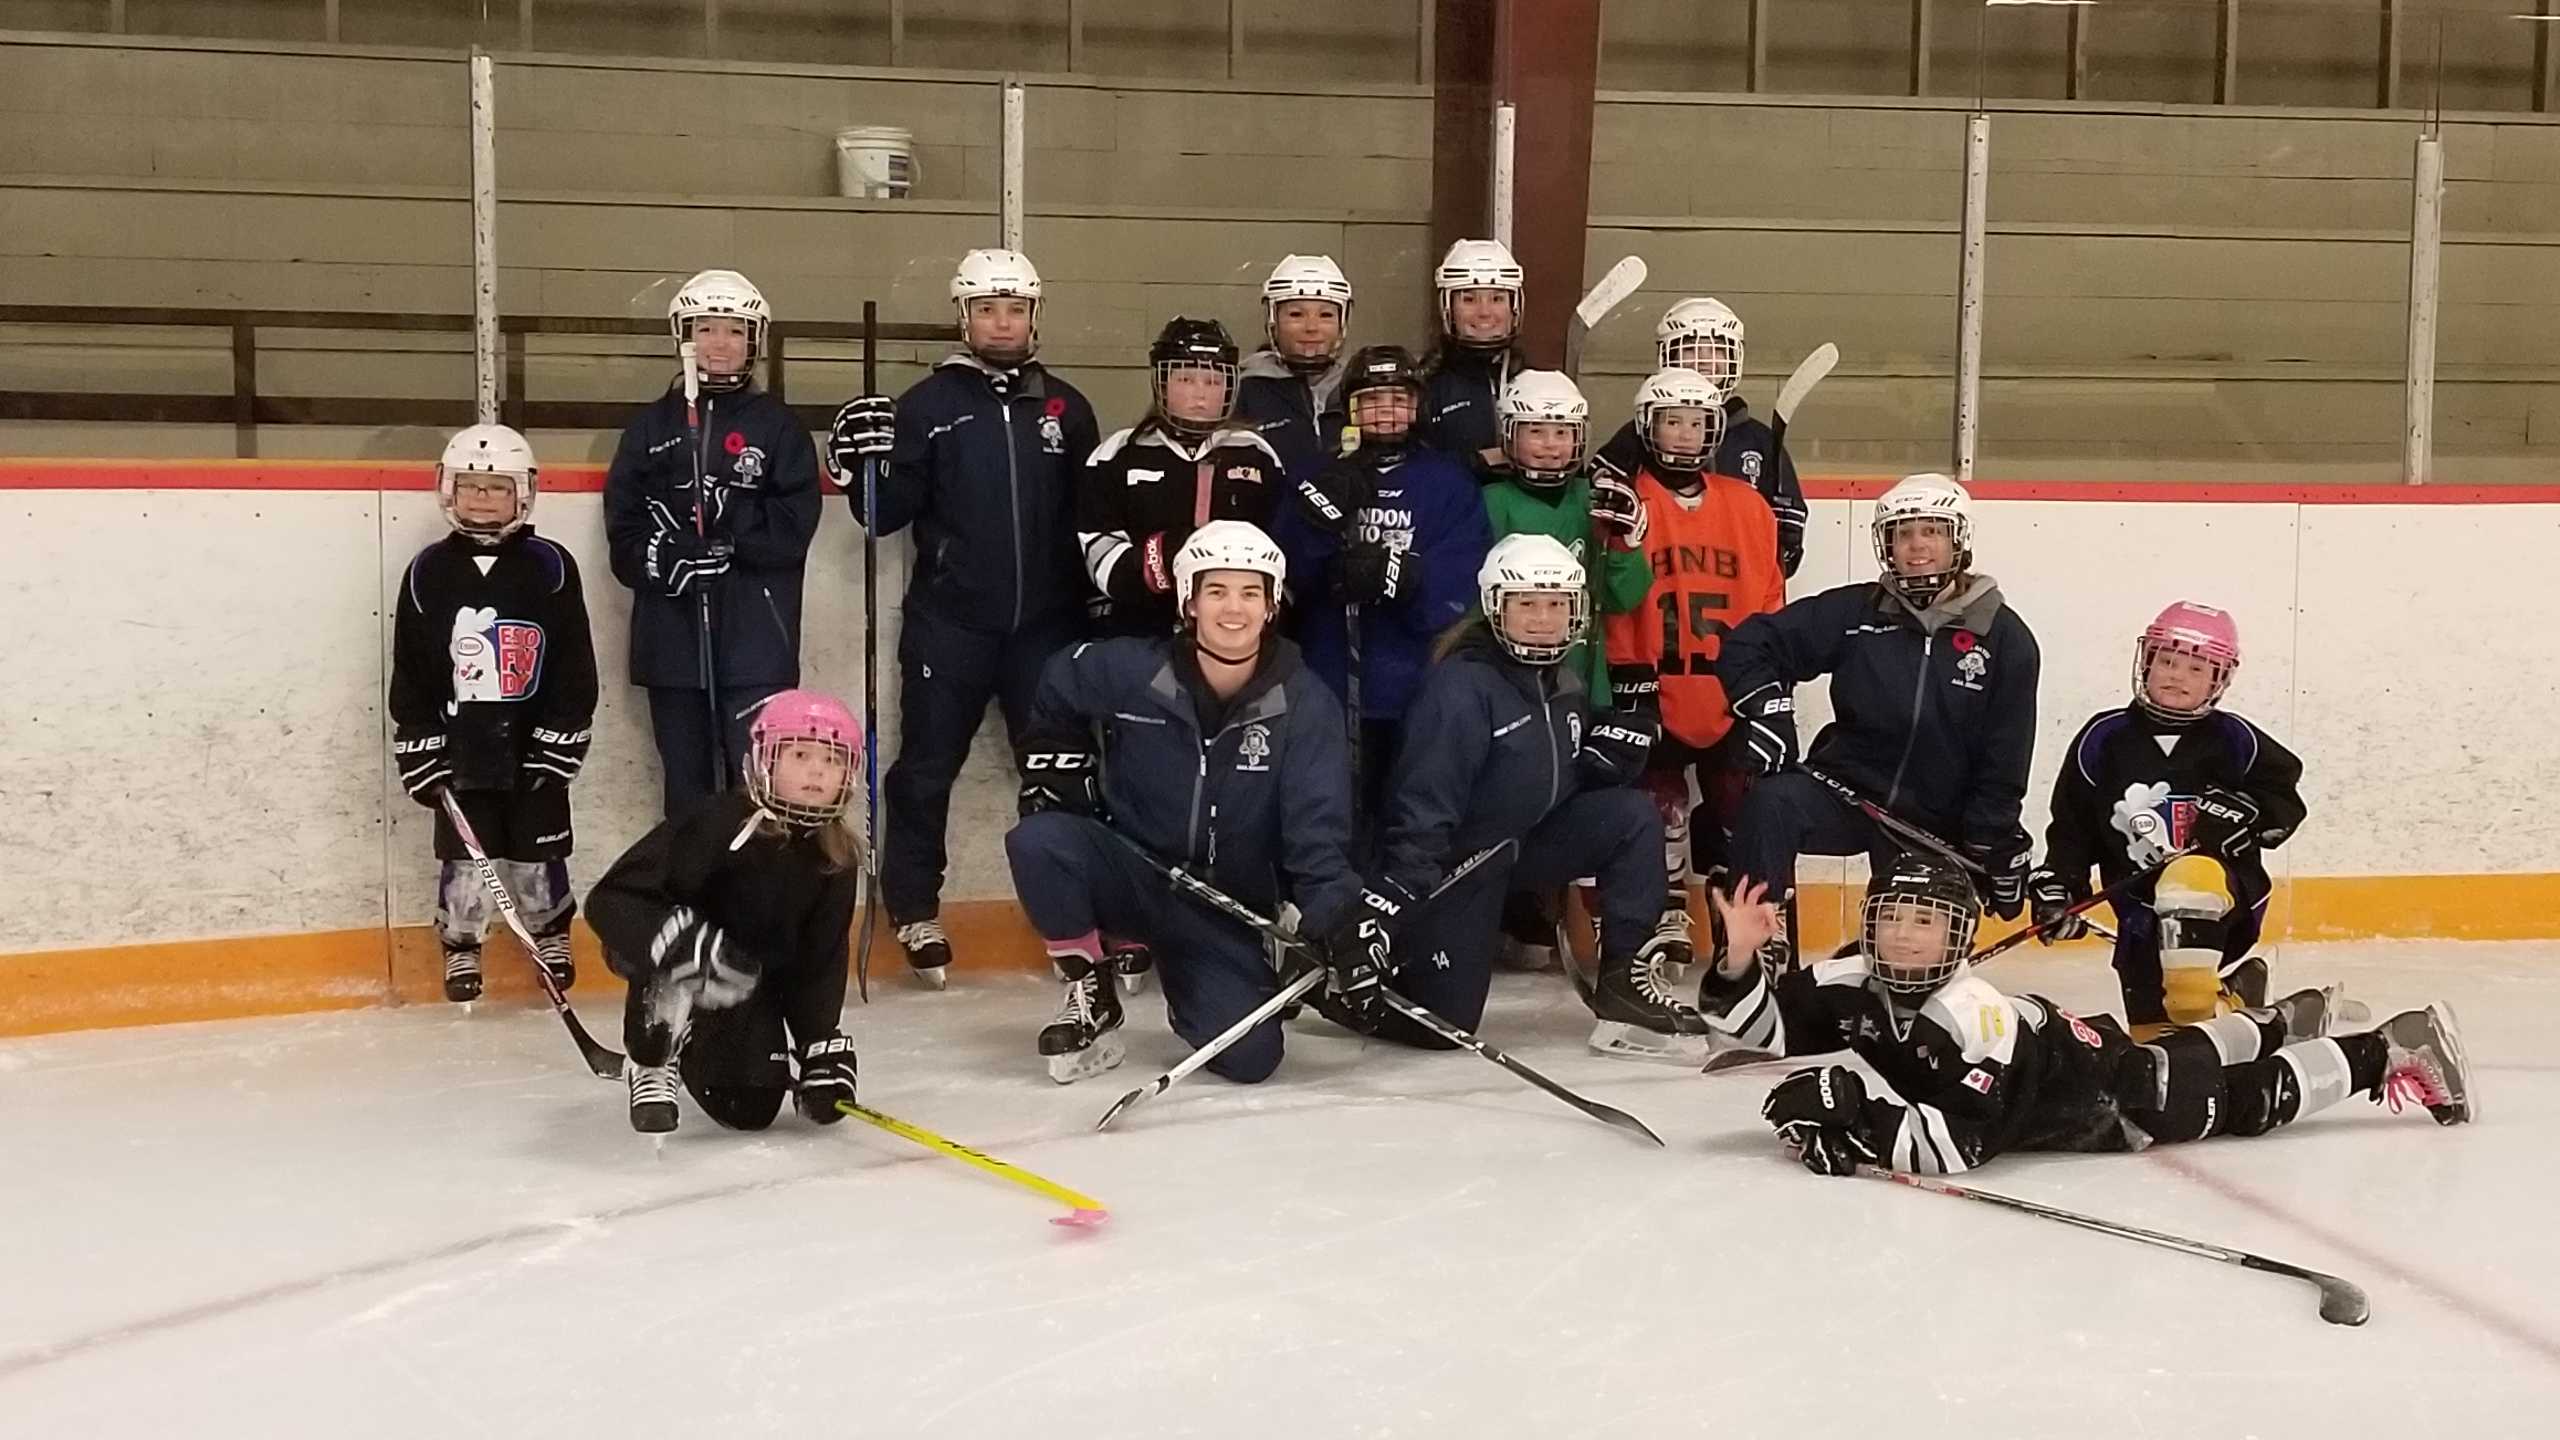 Stanley Minor Hockey awarded Top Association for Development Weekend